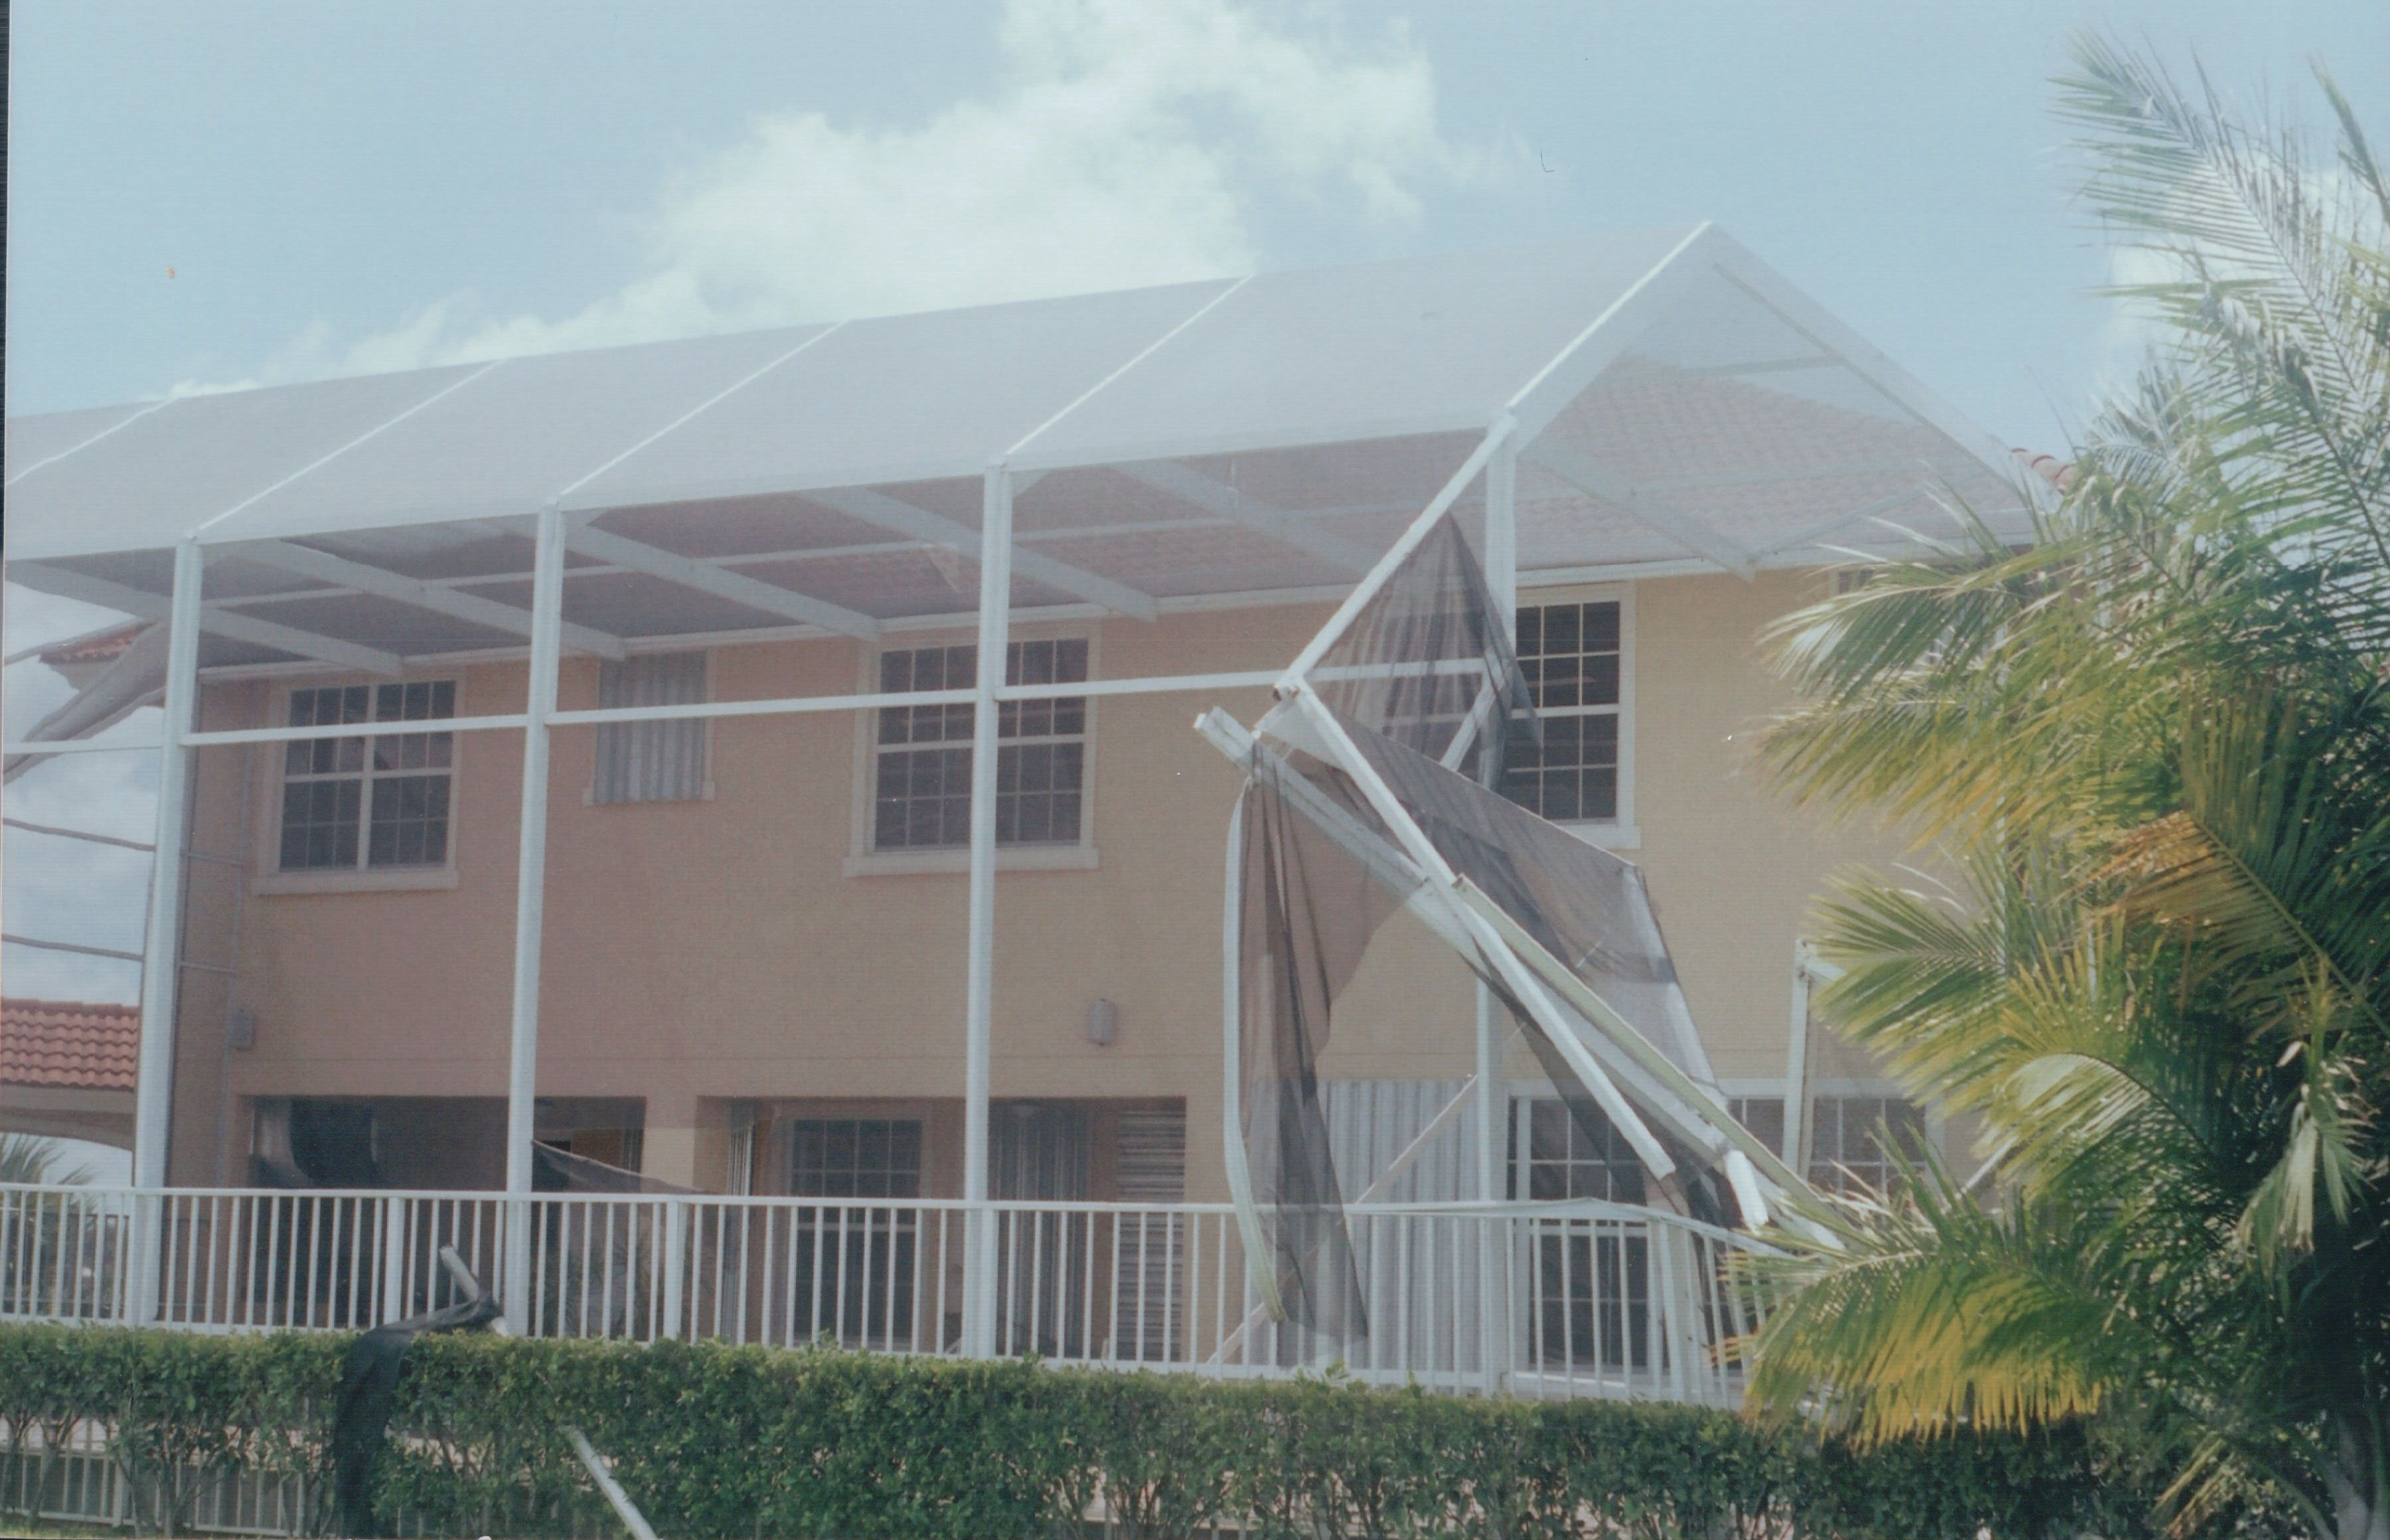 The Whole Side Of This 2 Story Screen Enclosure Was Blown In By The Storm Screen Enclosures Pool Screen Enclosure Swimming Pools